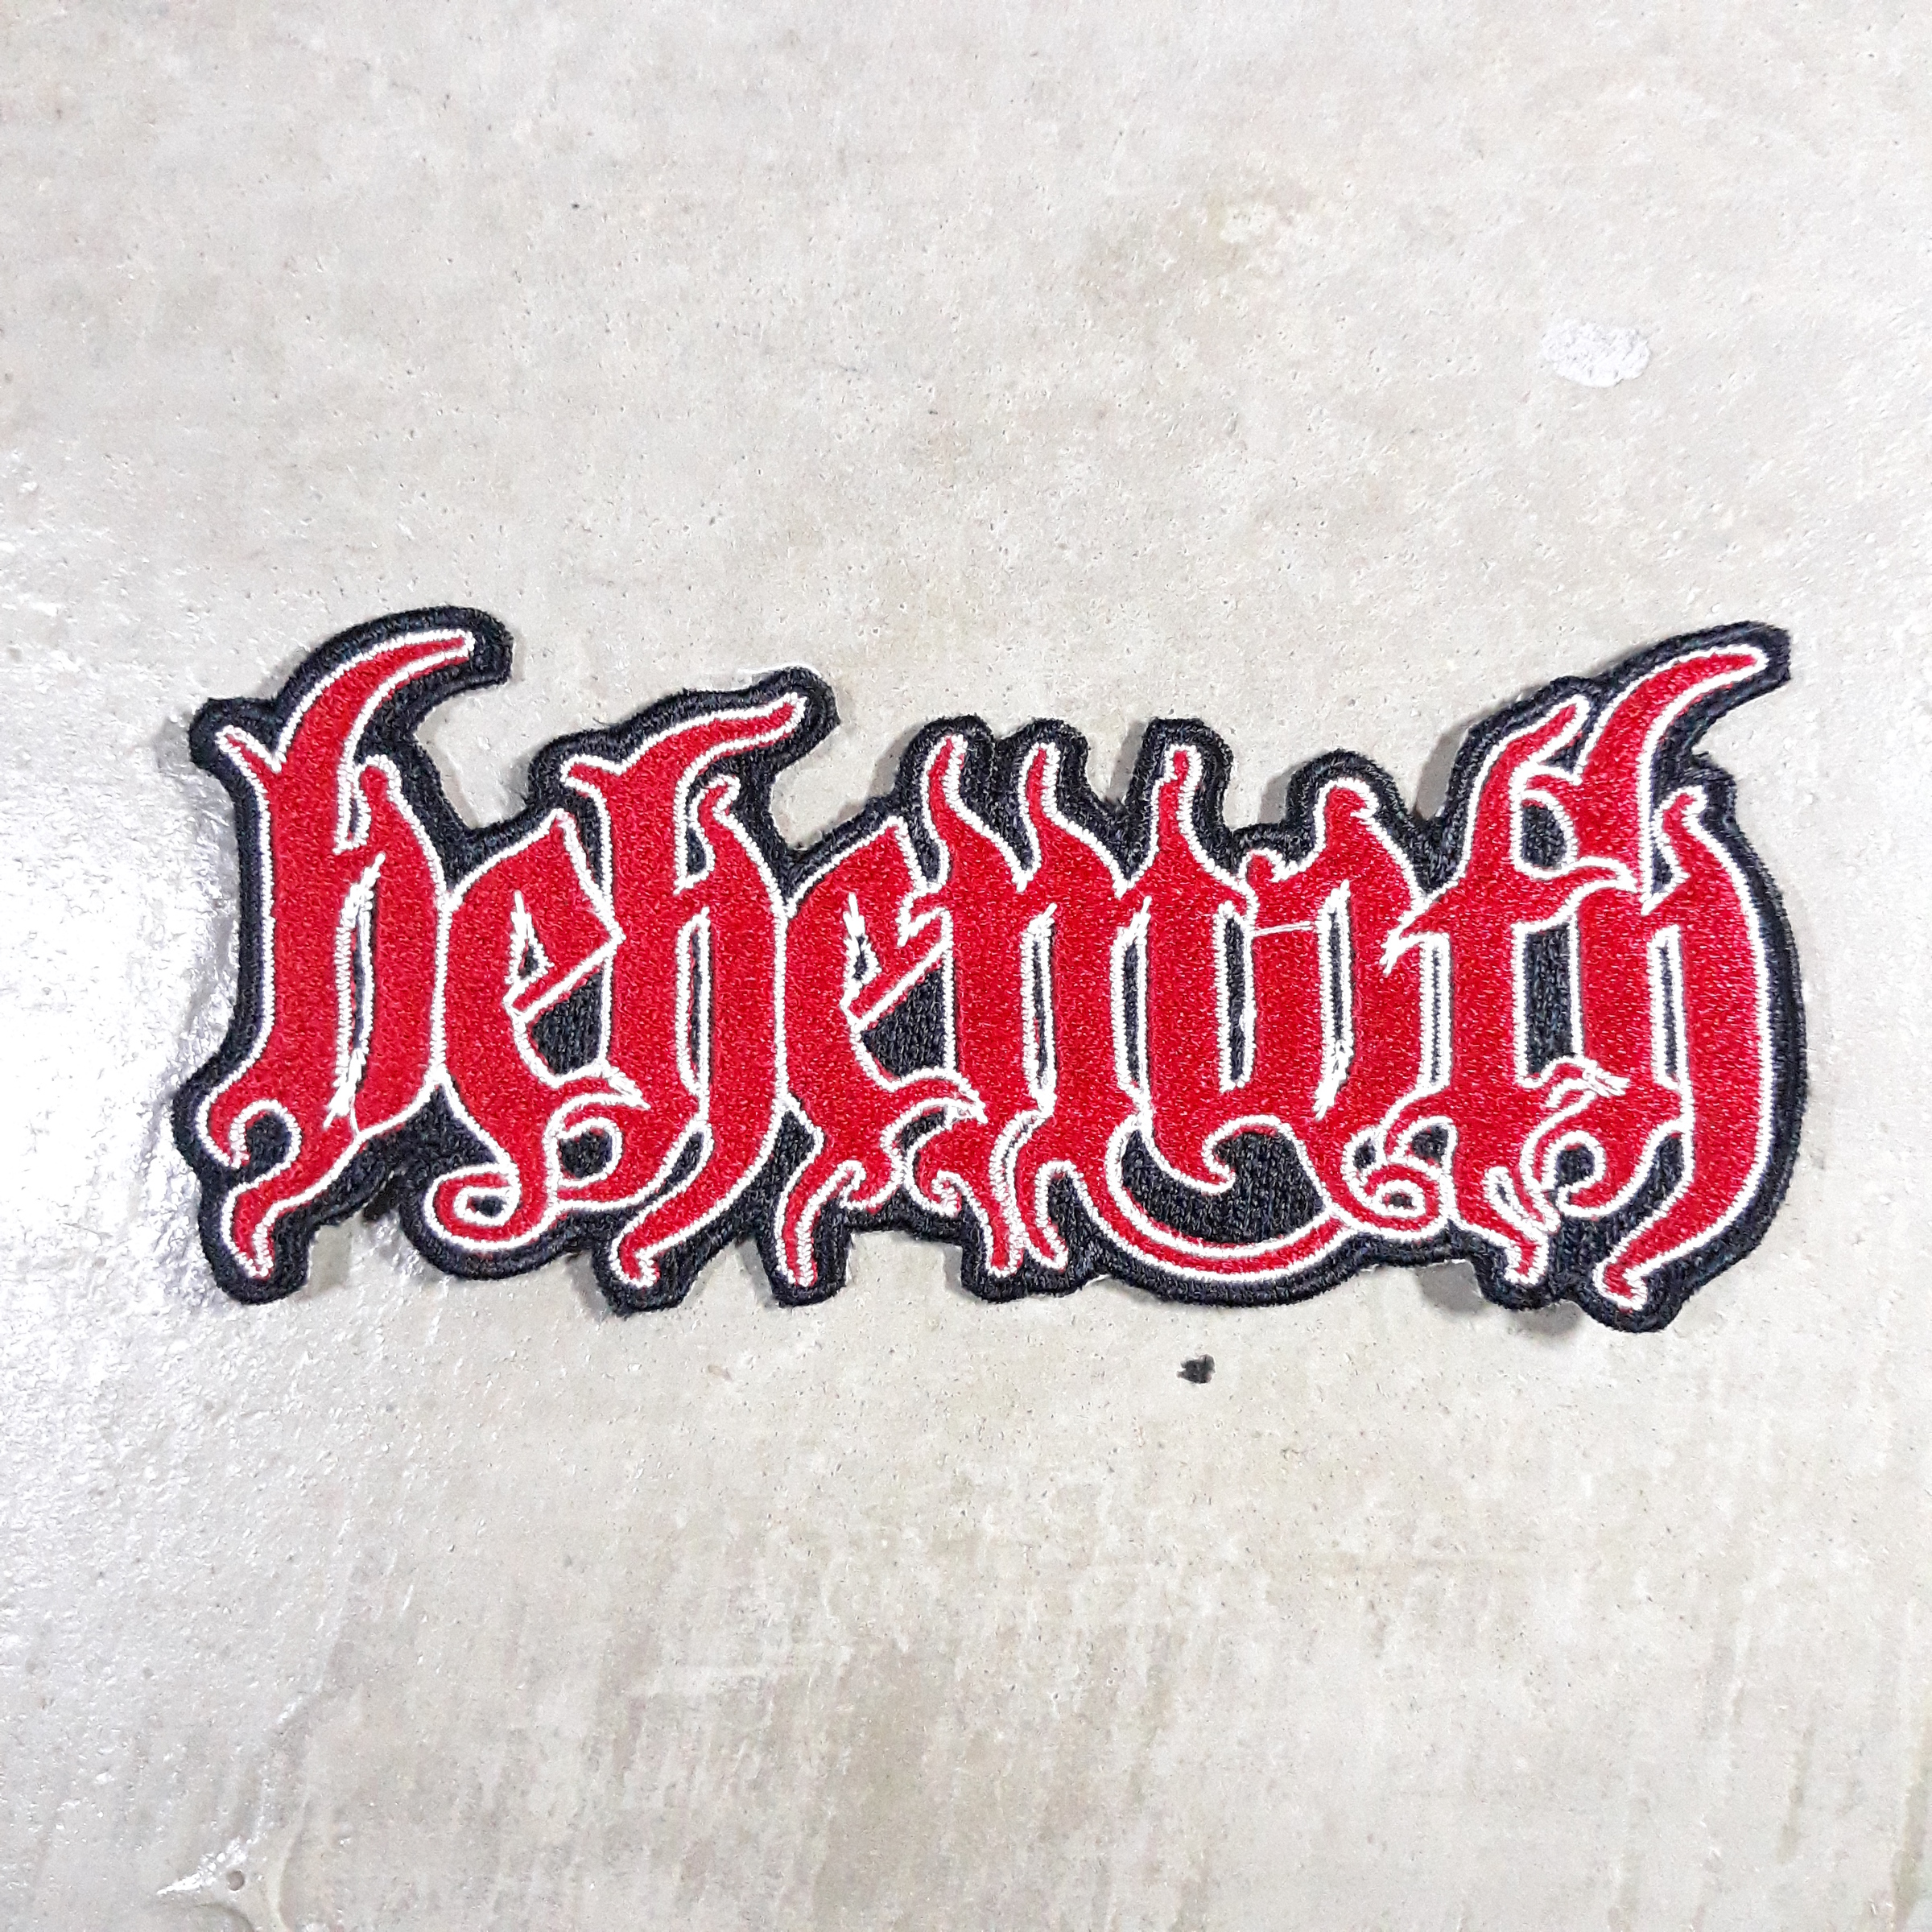 Behemoth red logo patch.jpg